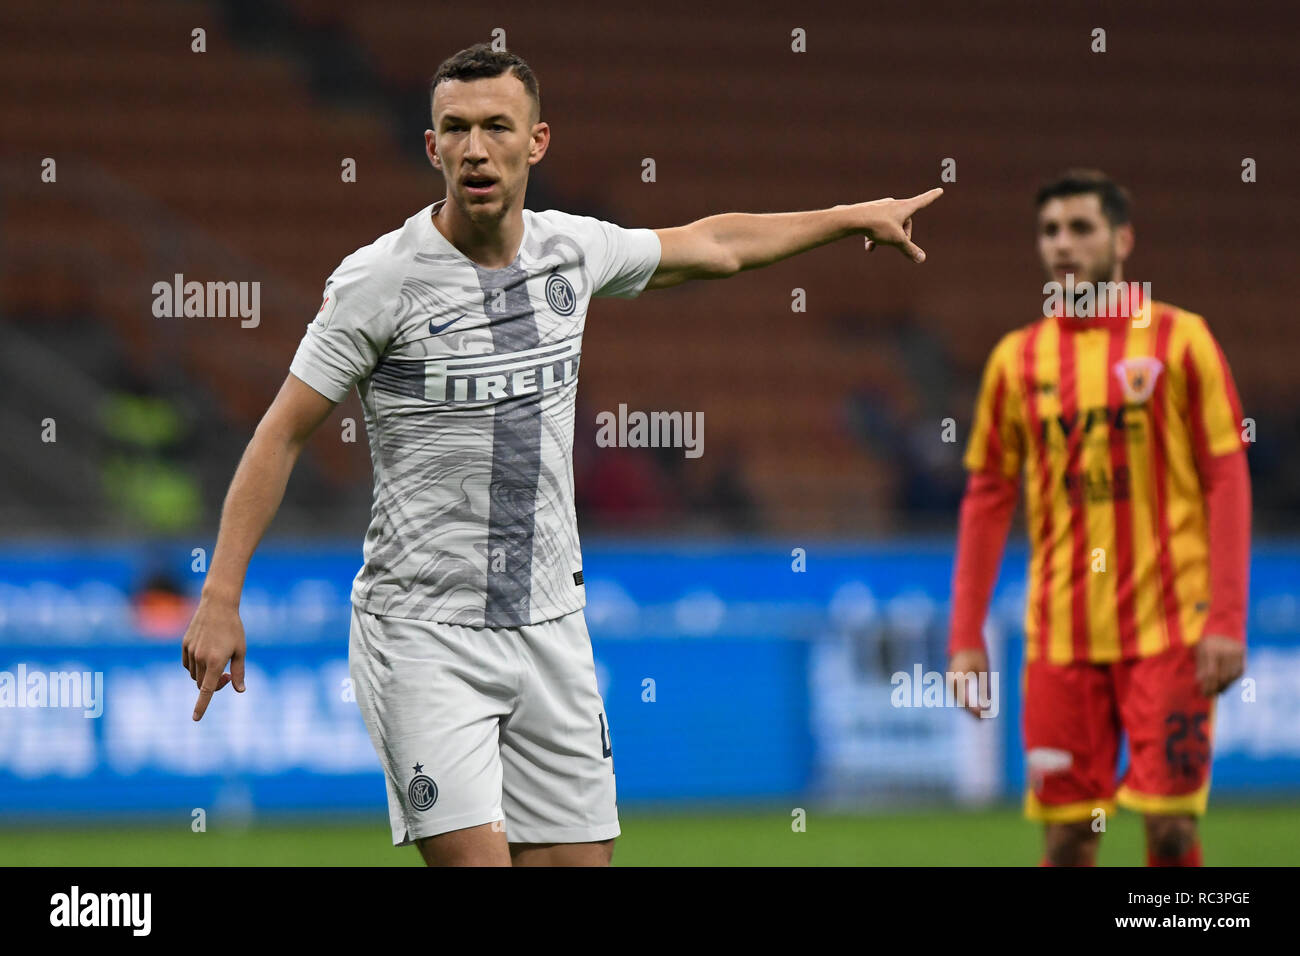 Milan, Italy. 13th Jan 2019. Midfielder Ivan Perisic (Inter) gestures during the Italian Cup 'Coppa Italia' football match, Inter Milan vs Benevento Calcio at San Siro Meazza Stadium in Milan, Italy on 13 January 2019. The football match is played behind closed doors after Napoli's Senegalese player Kalidou Koulibaly was subject to racist chants by FC Internazionale's 'ultra' fans during the Boxing Day match. Credit: Piero Cruciatti/Alamy Live News - Stock Image